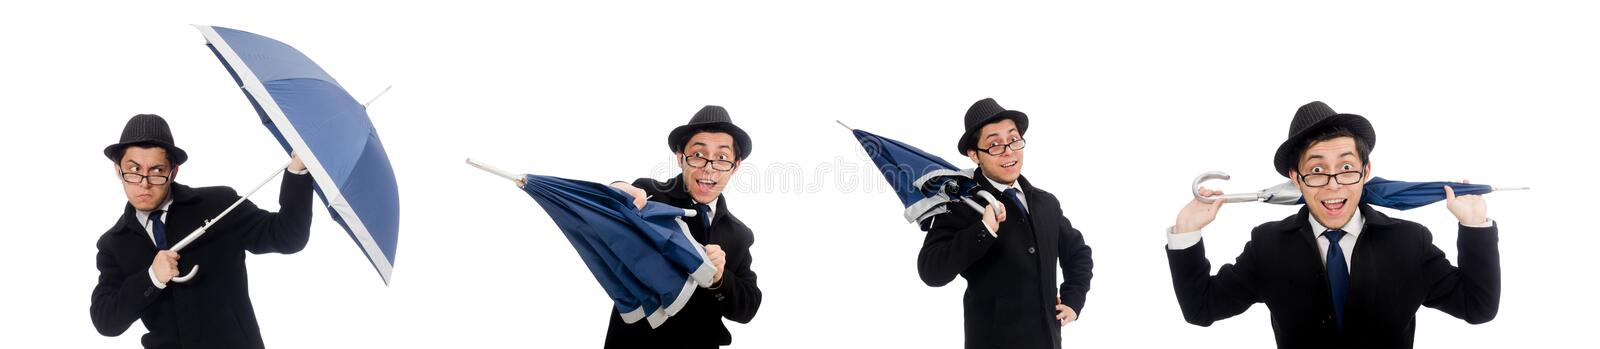 Young man with umbrella isolated on white stock images